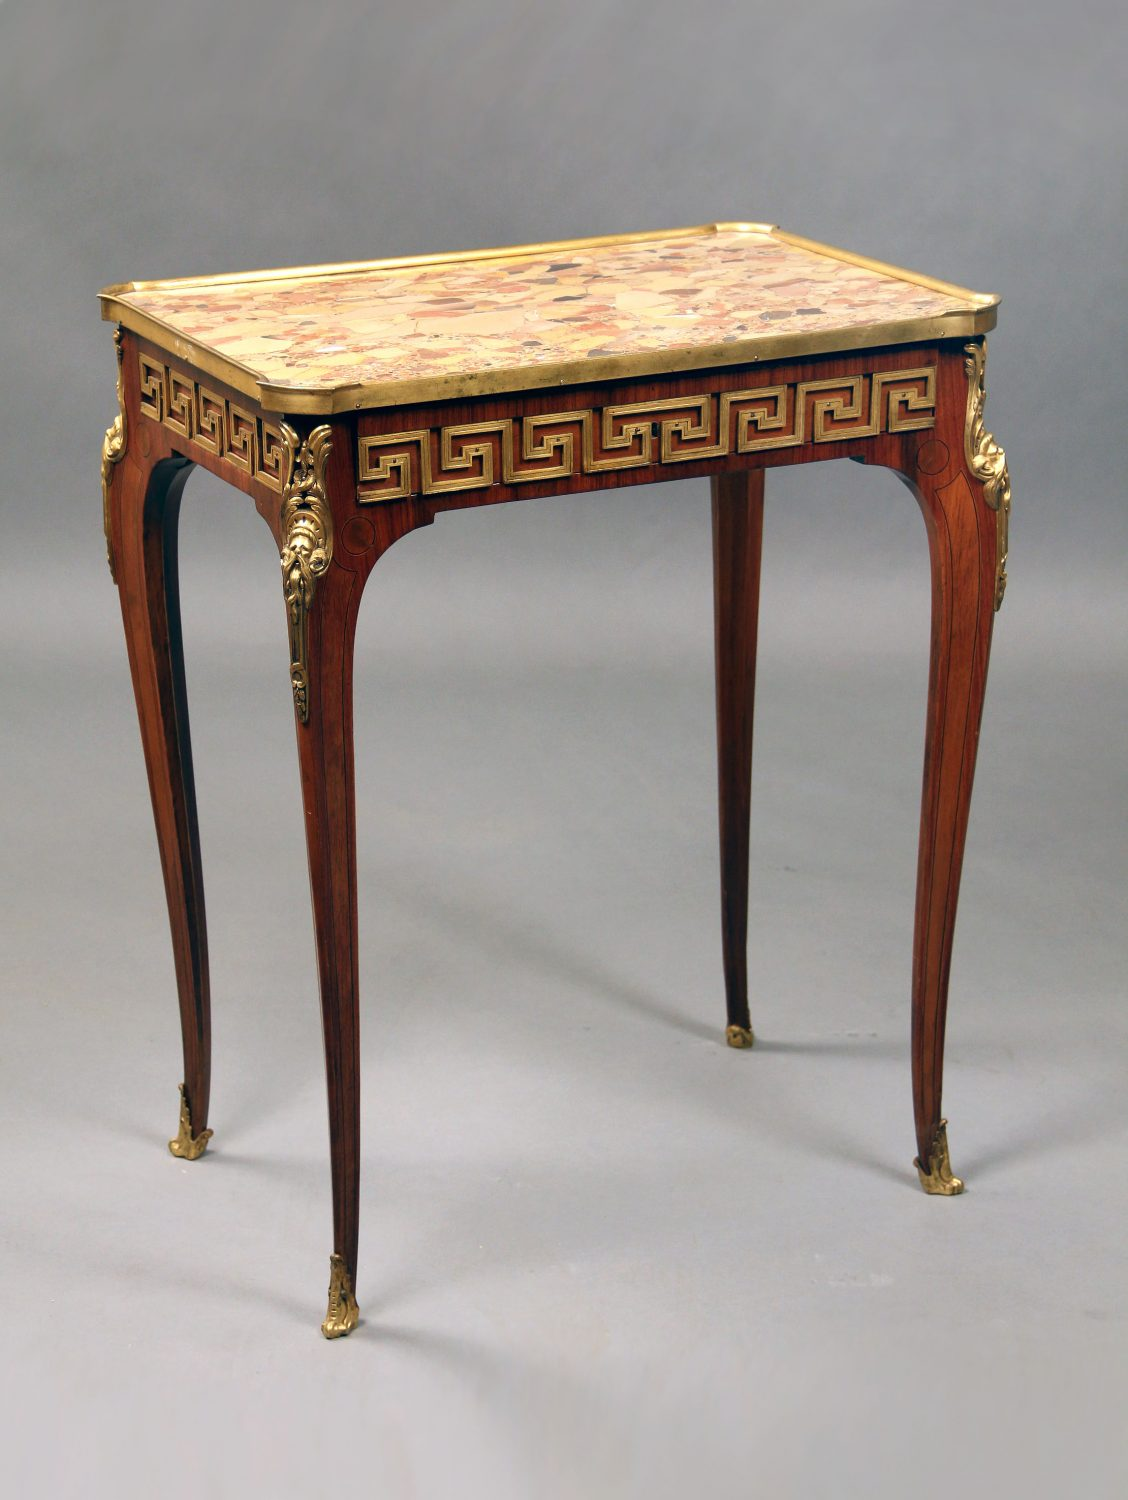 19th Century Louis XV Style Gilt Bronze Mounted Lamp Table with a Marble Top By Paul Sormani